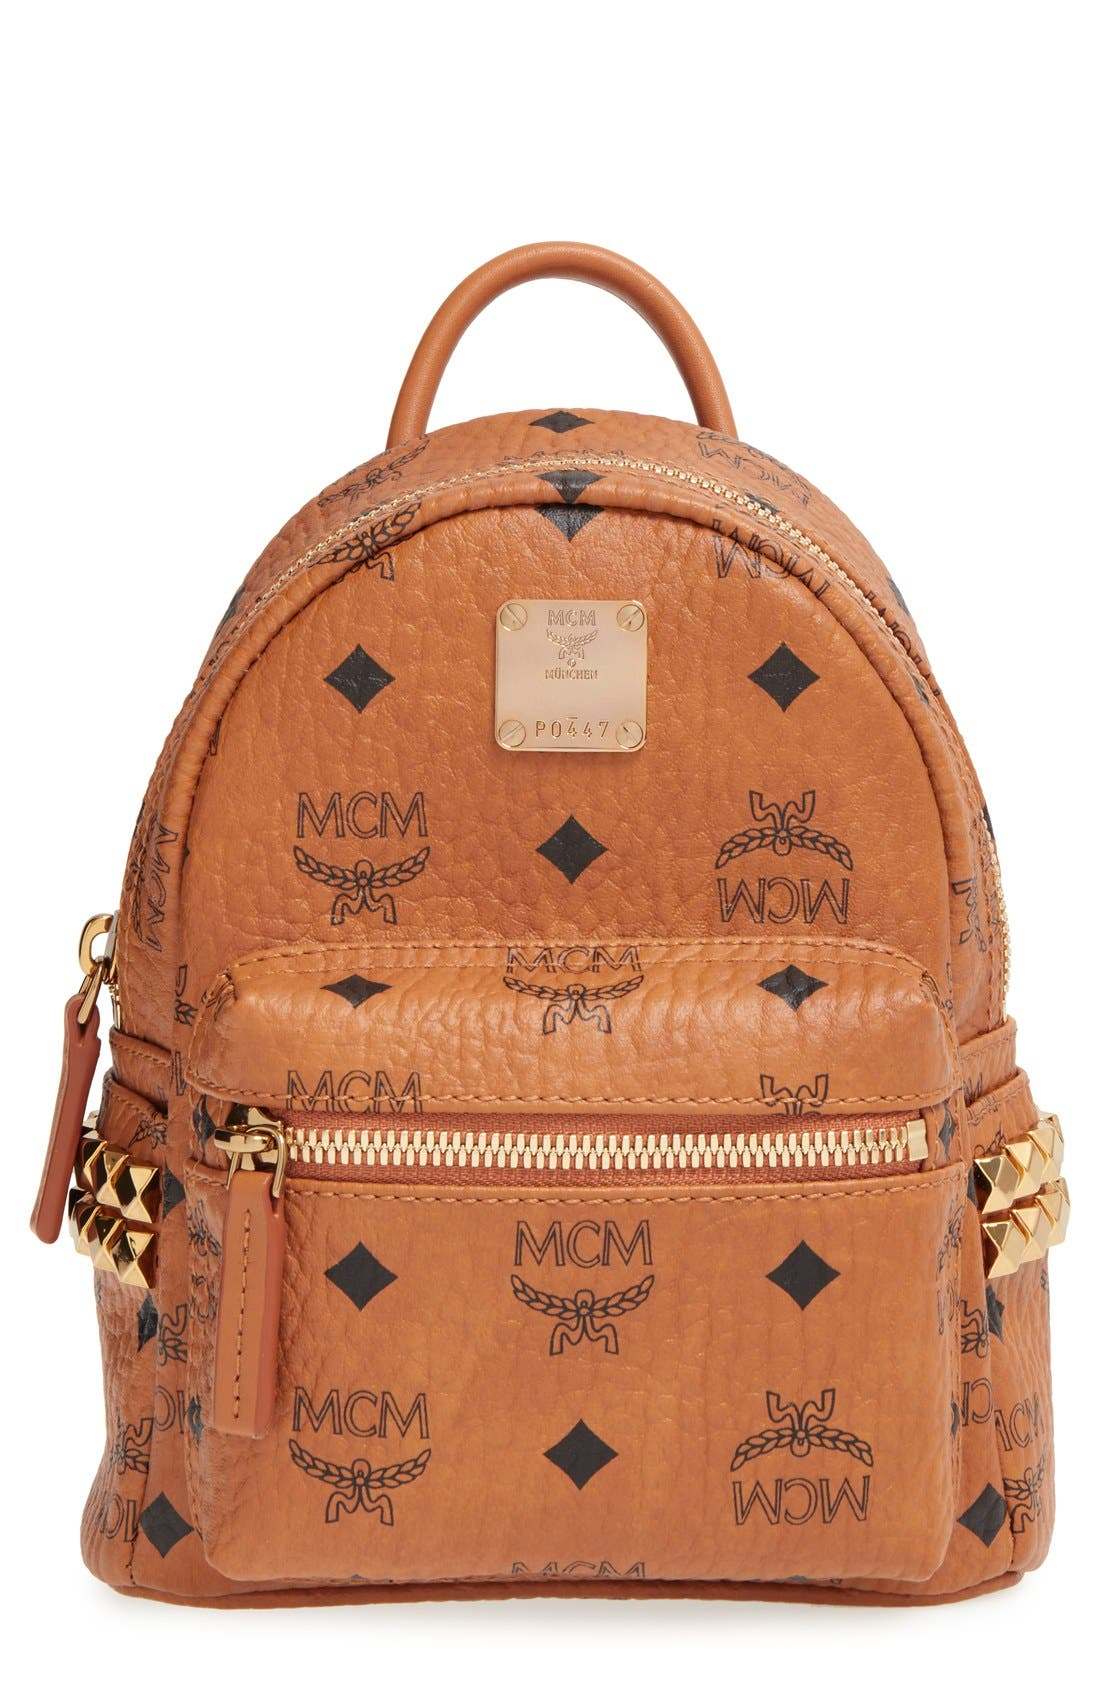 MCM 'X-Mini Stark Side Stud' Convertible Backpack